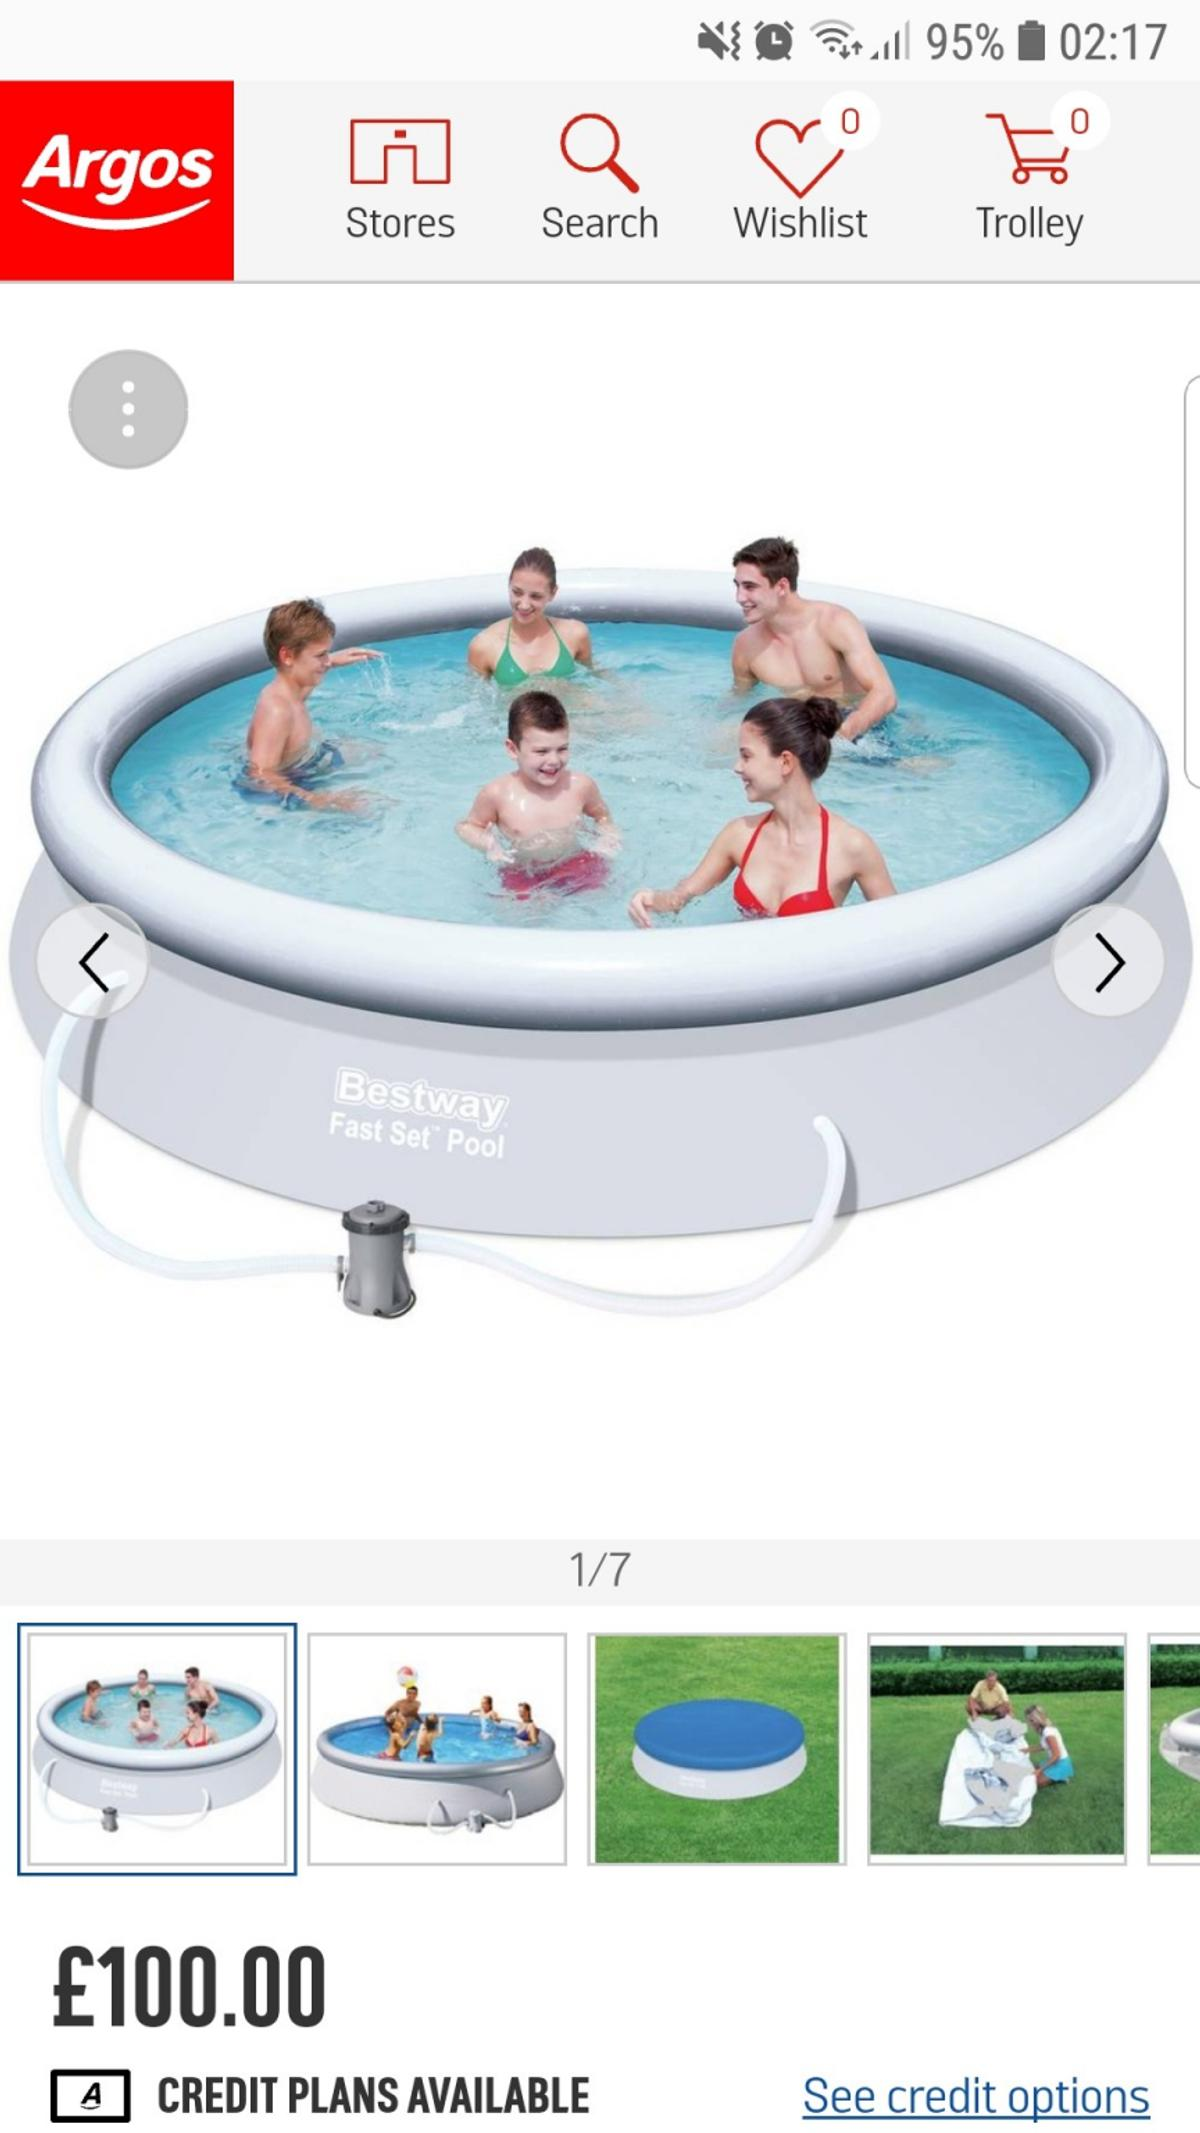 Swimming Pool In Doncaster For 123 00 For Sale Shpock